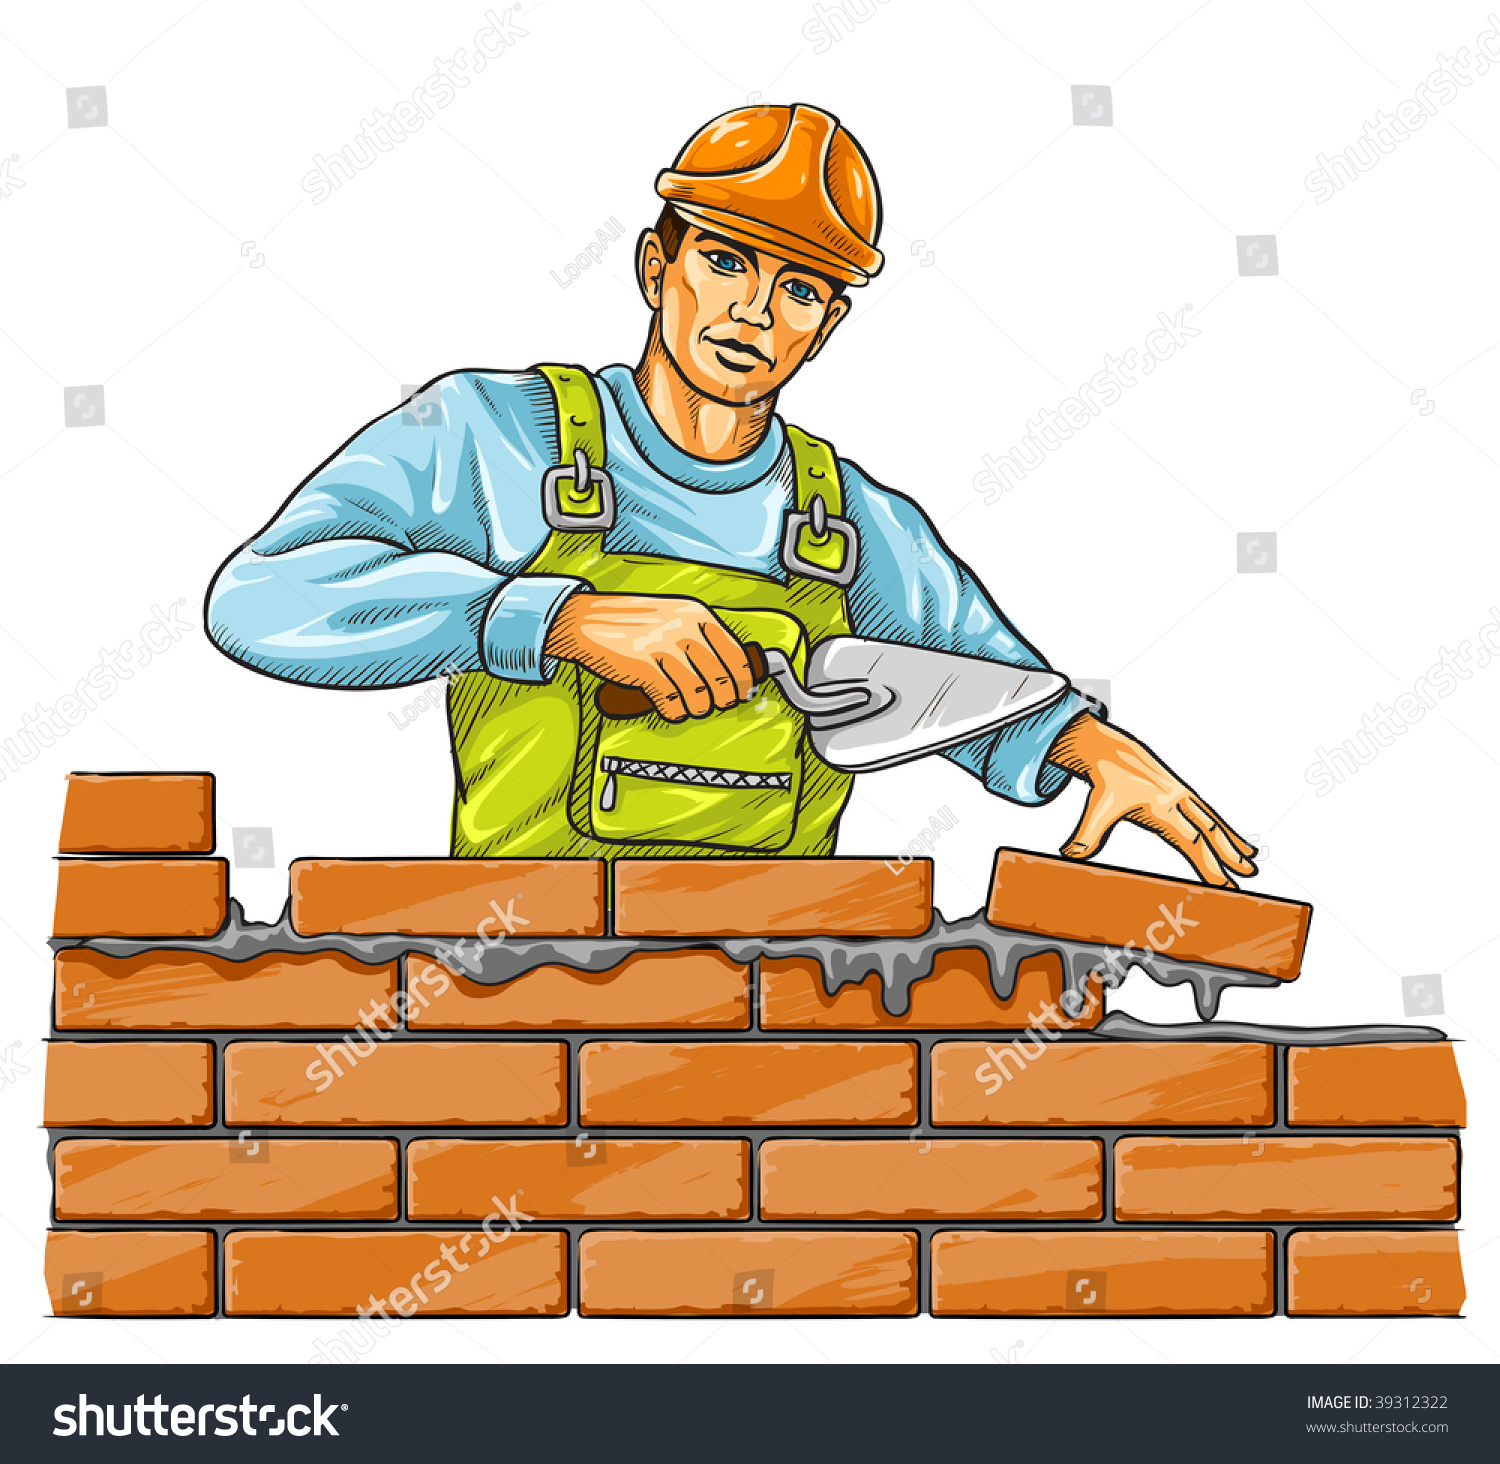 Builder man derby tool building brick stock vector for Www builder